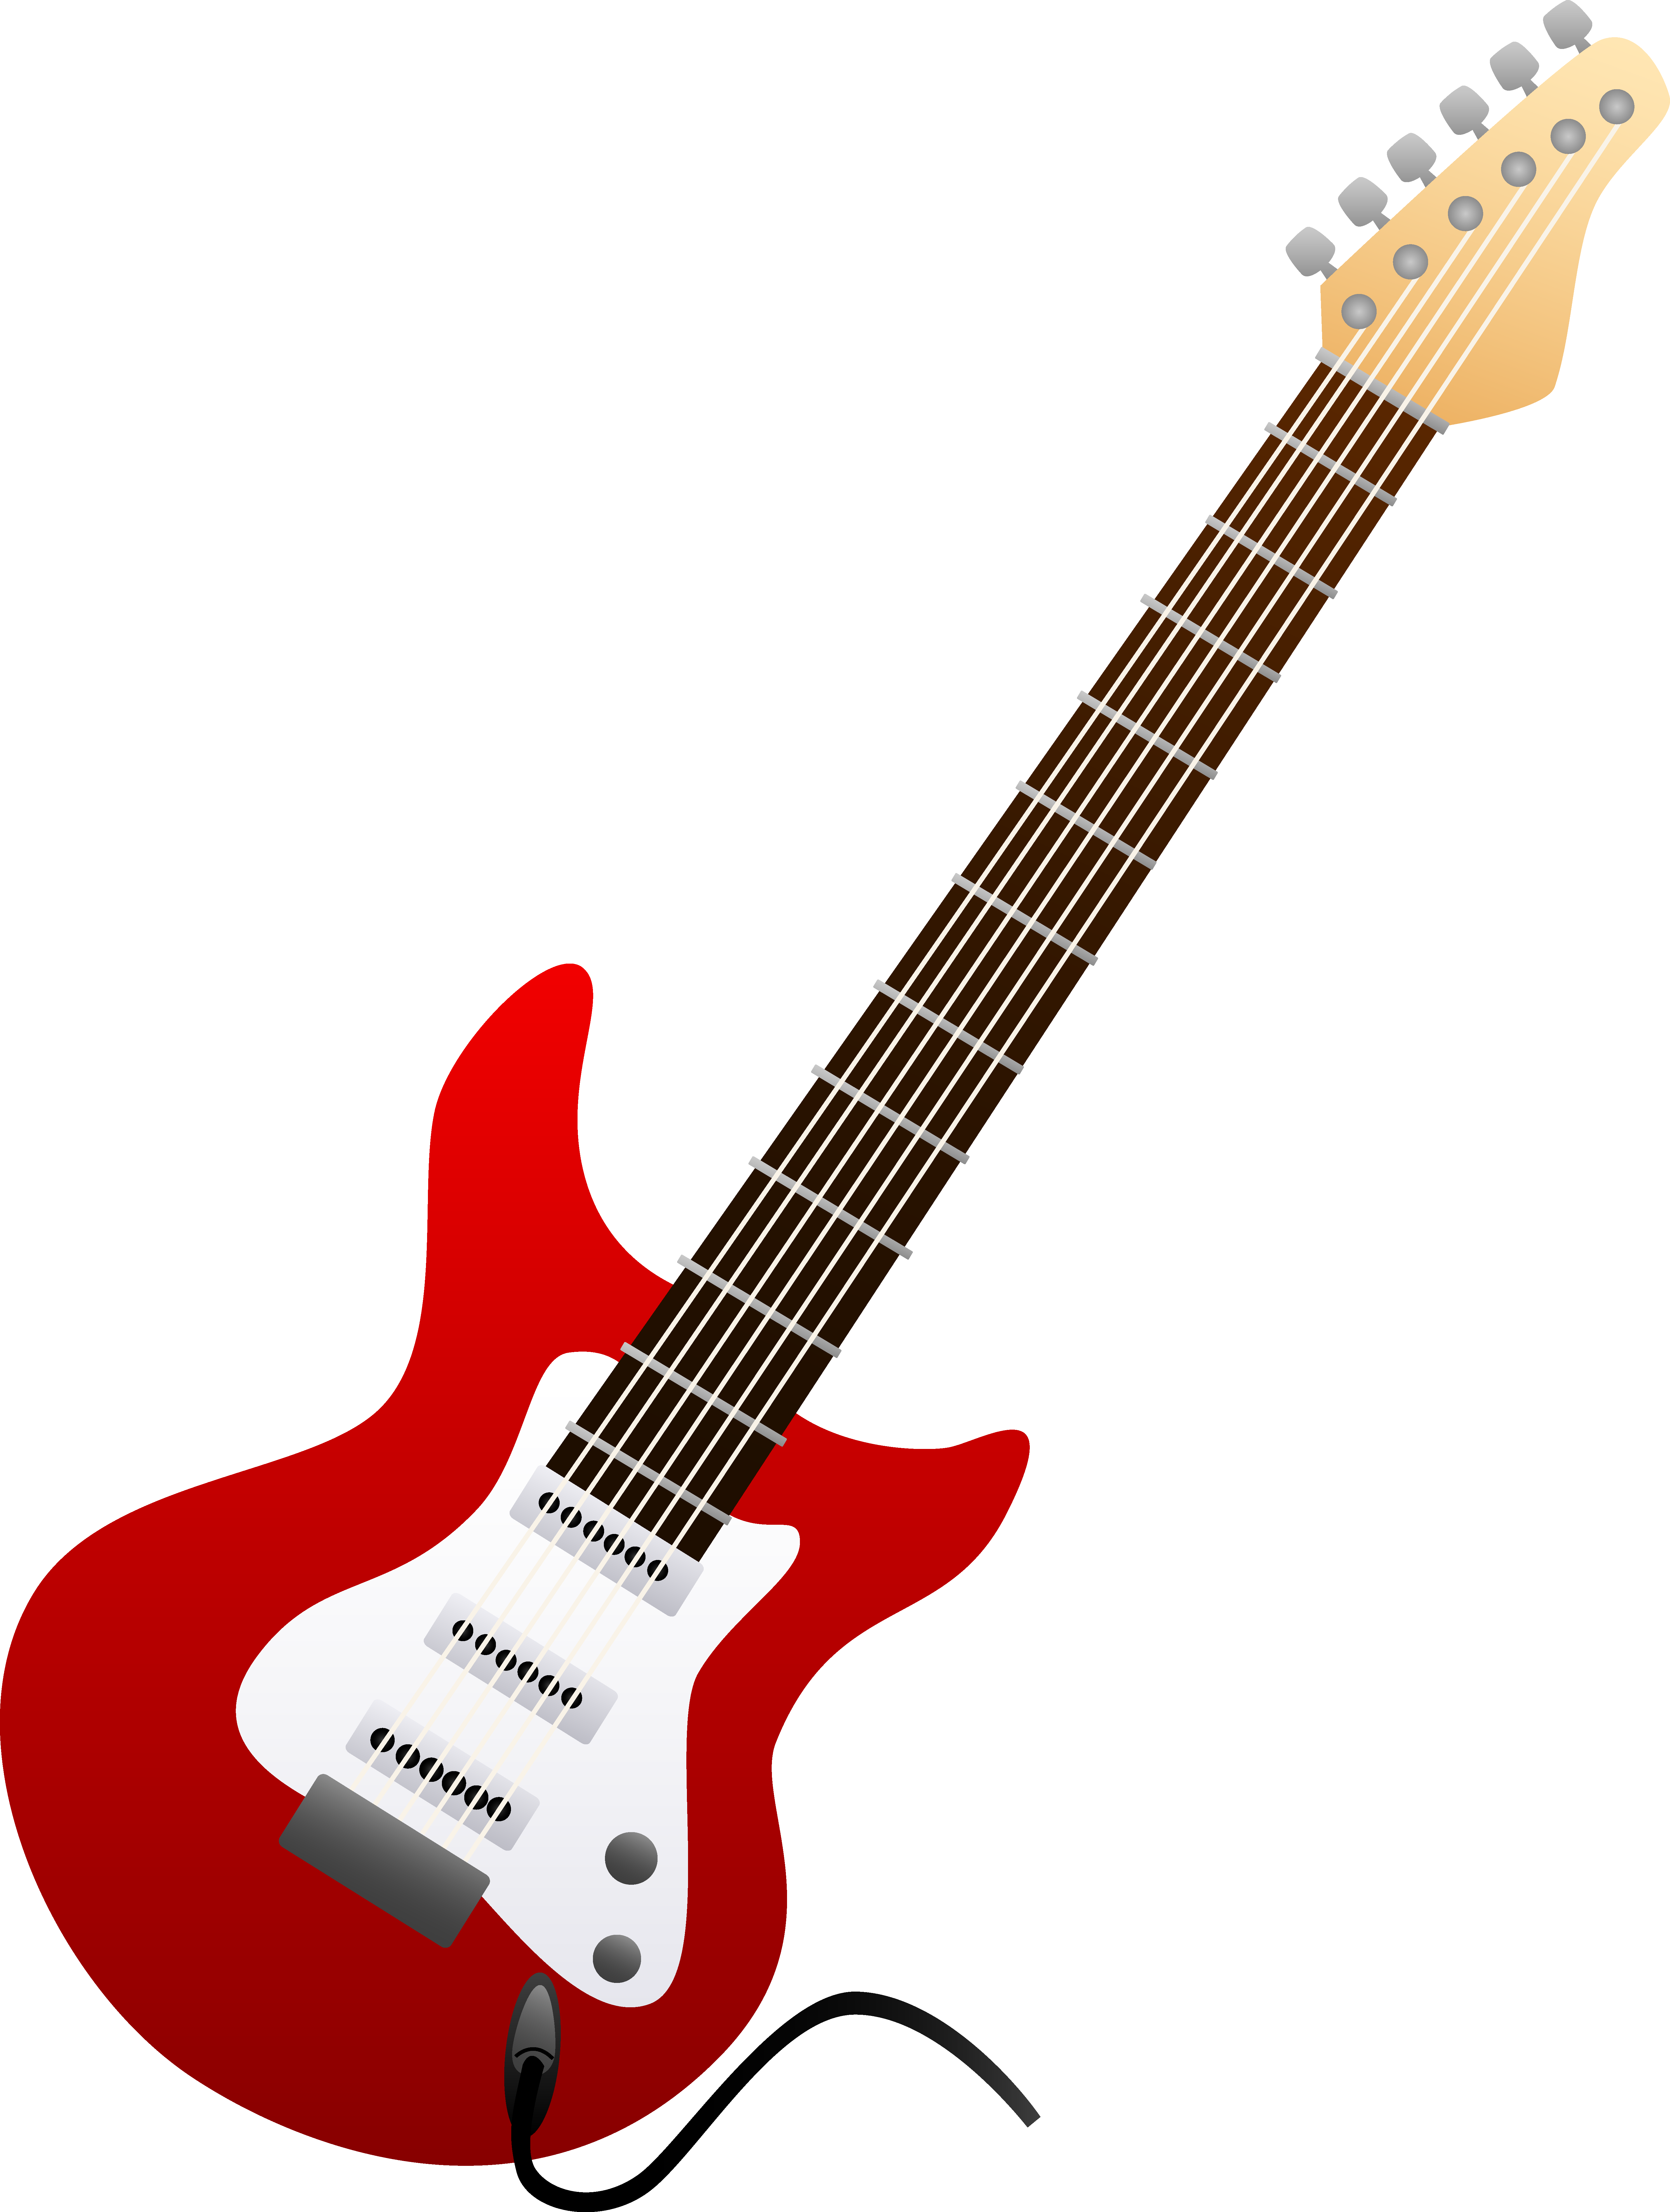 42 guitar clip art kaleb pinterest red electric guitar clip rh pinterest com red electric guitar clip art electric guitar clip art black and white